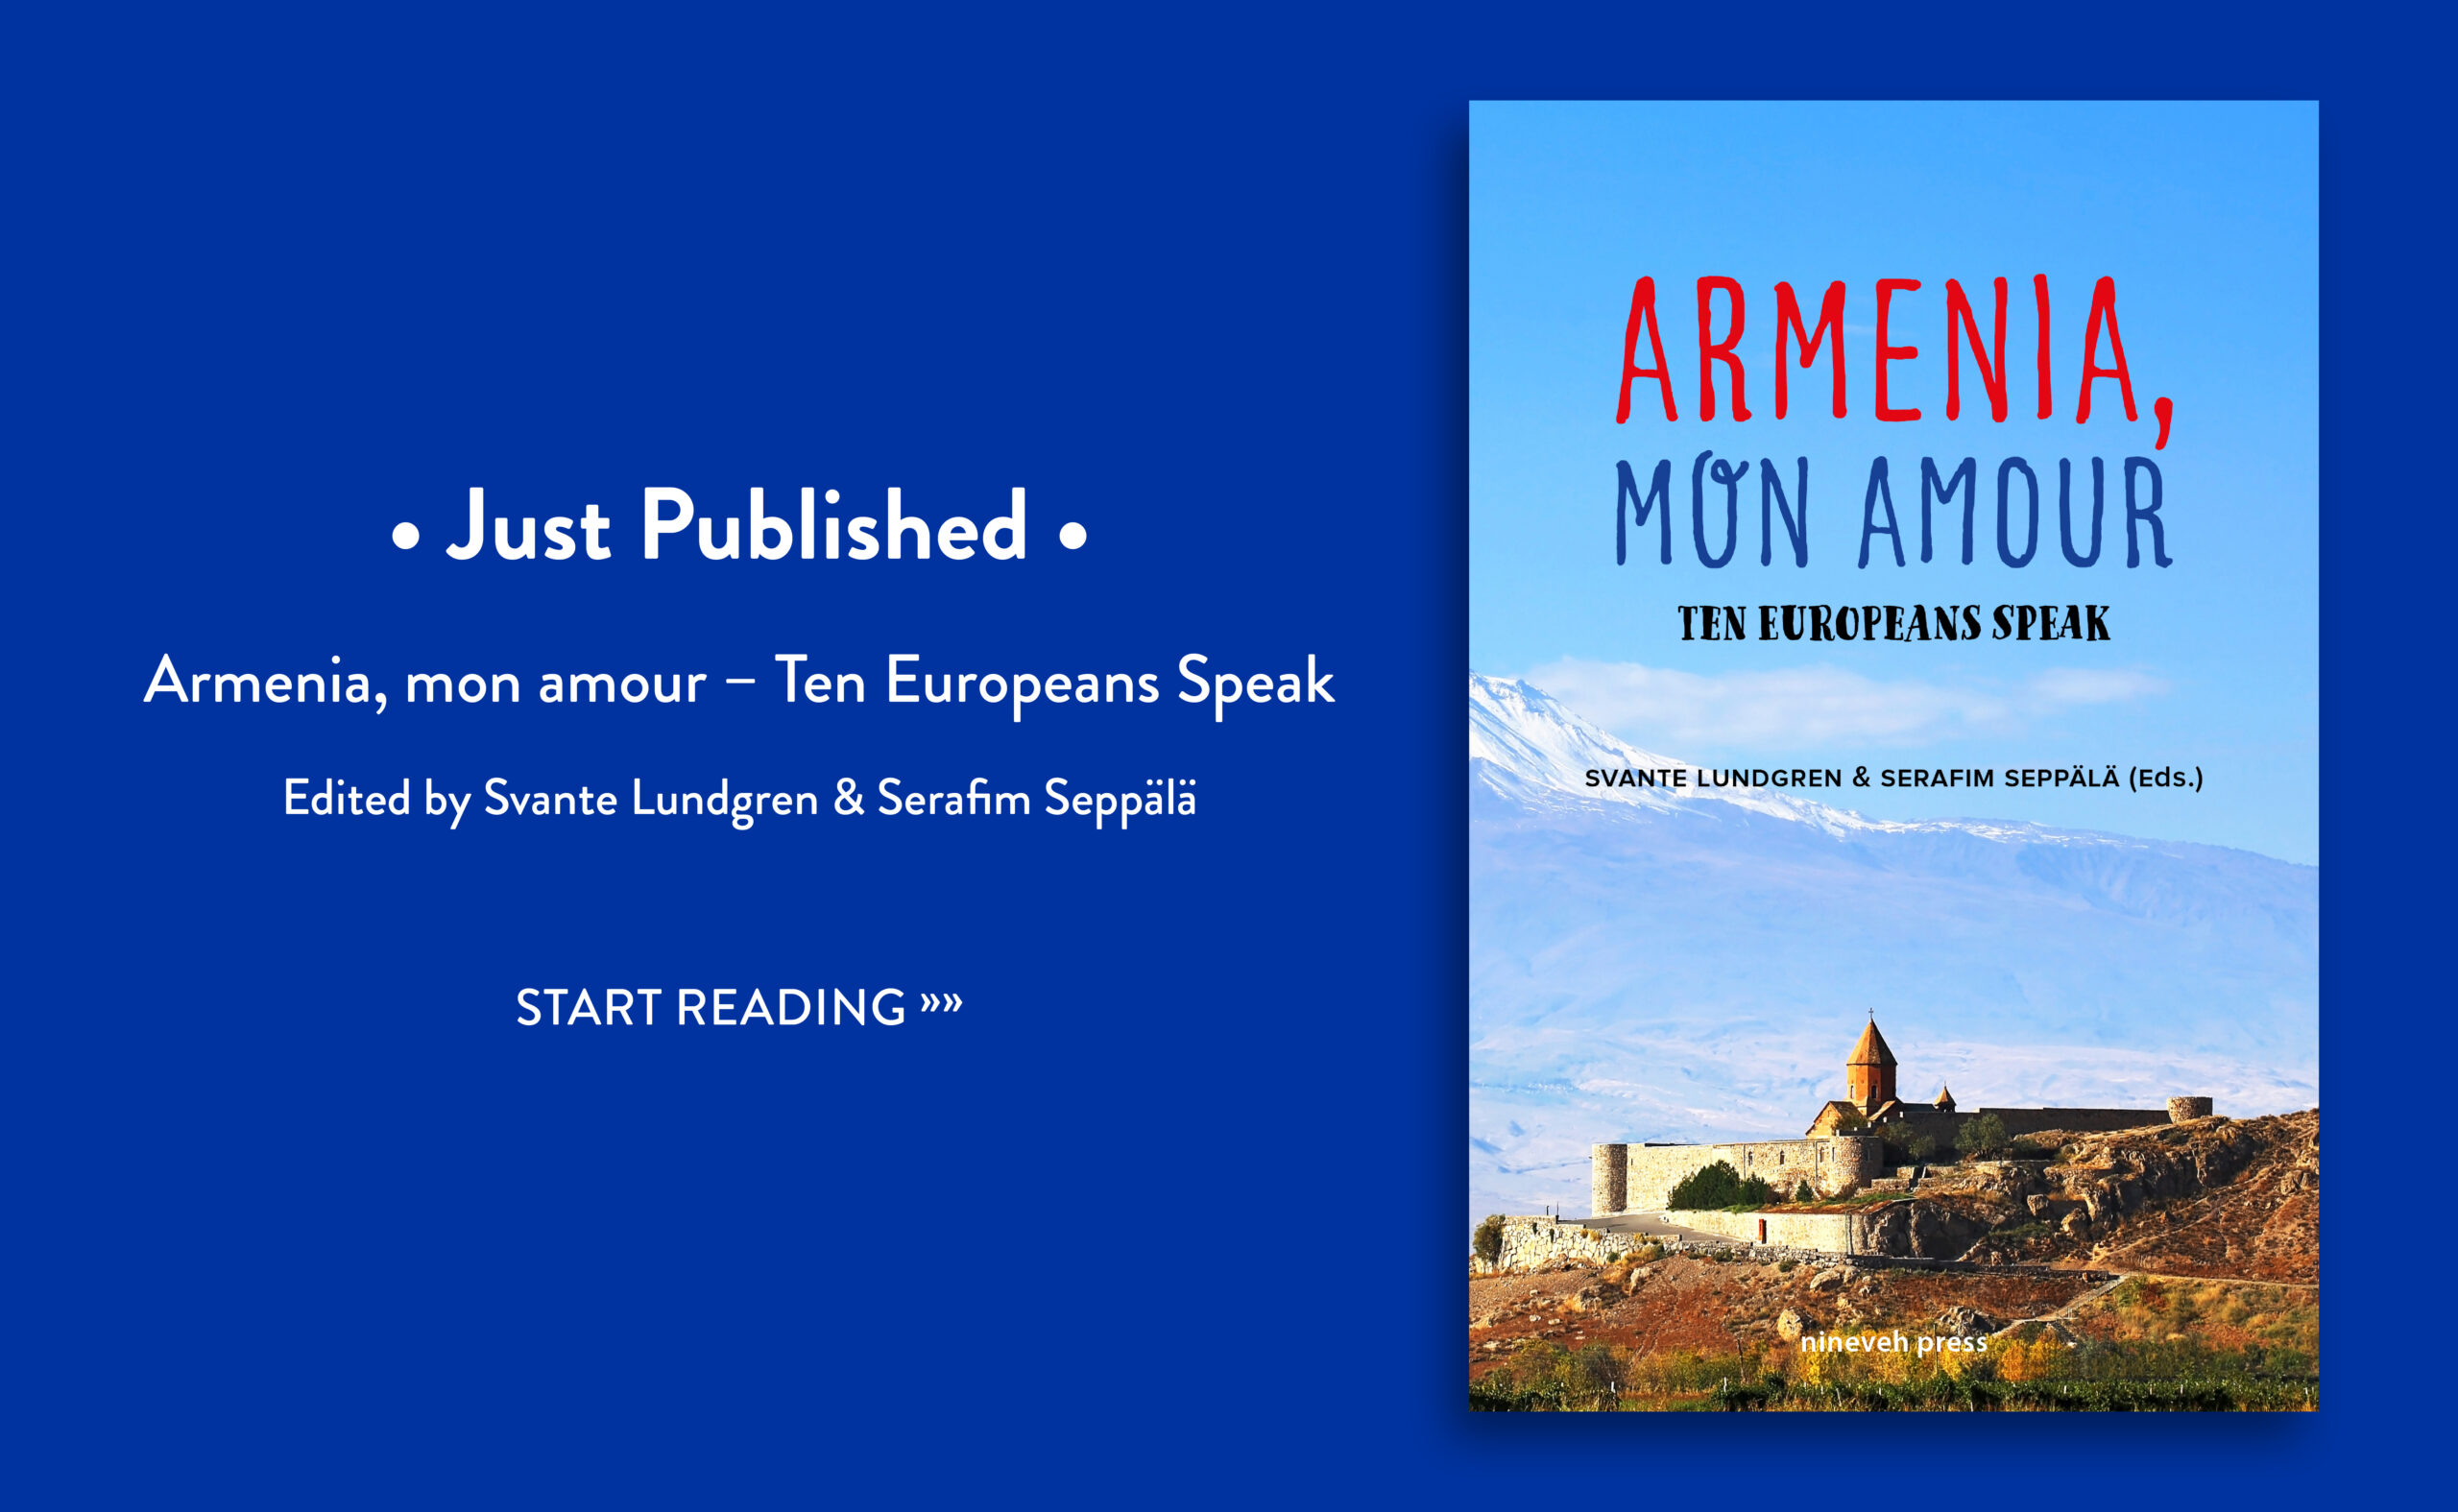 armenia-mon-amour_justpublished-2020_web_1739x1070px